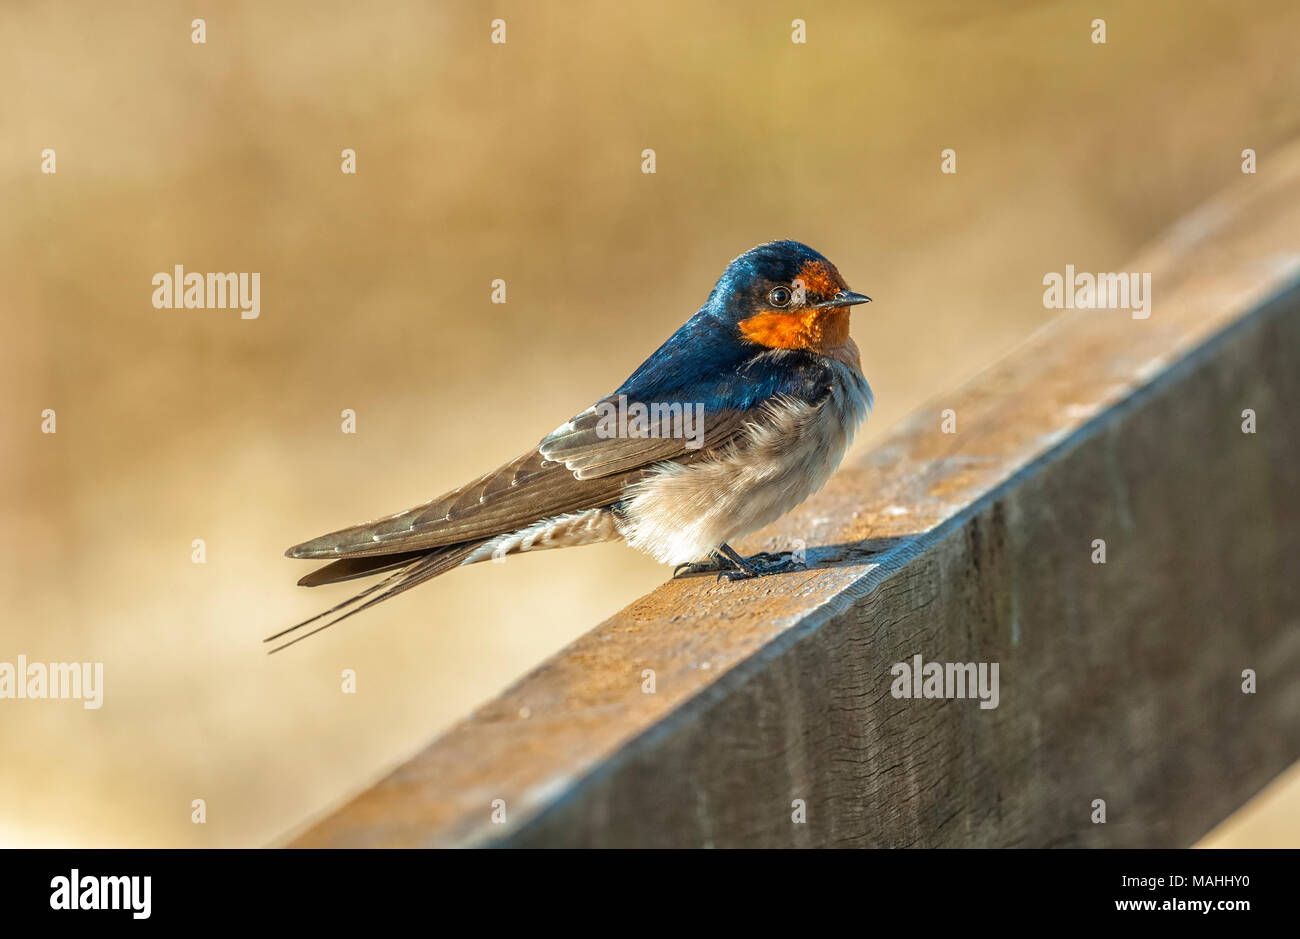 A welcome swallow perched on a bridge in northern queensland, australia Stock Photo